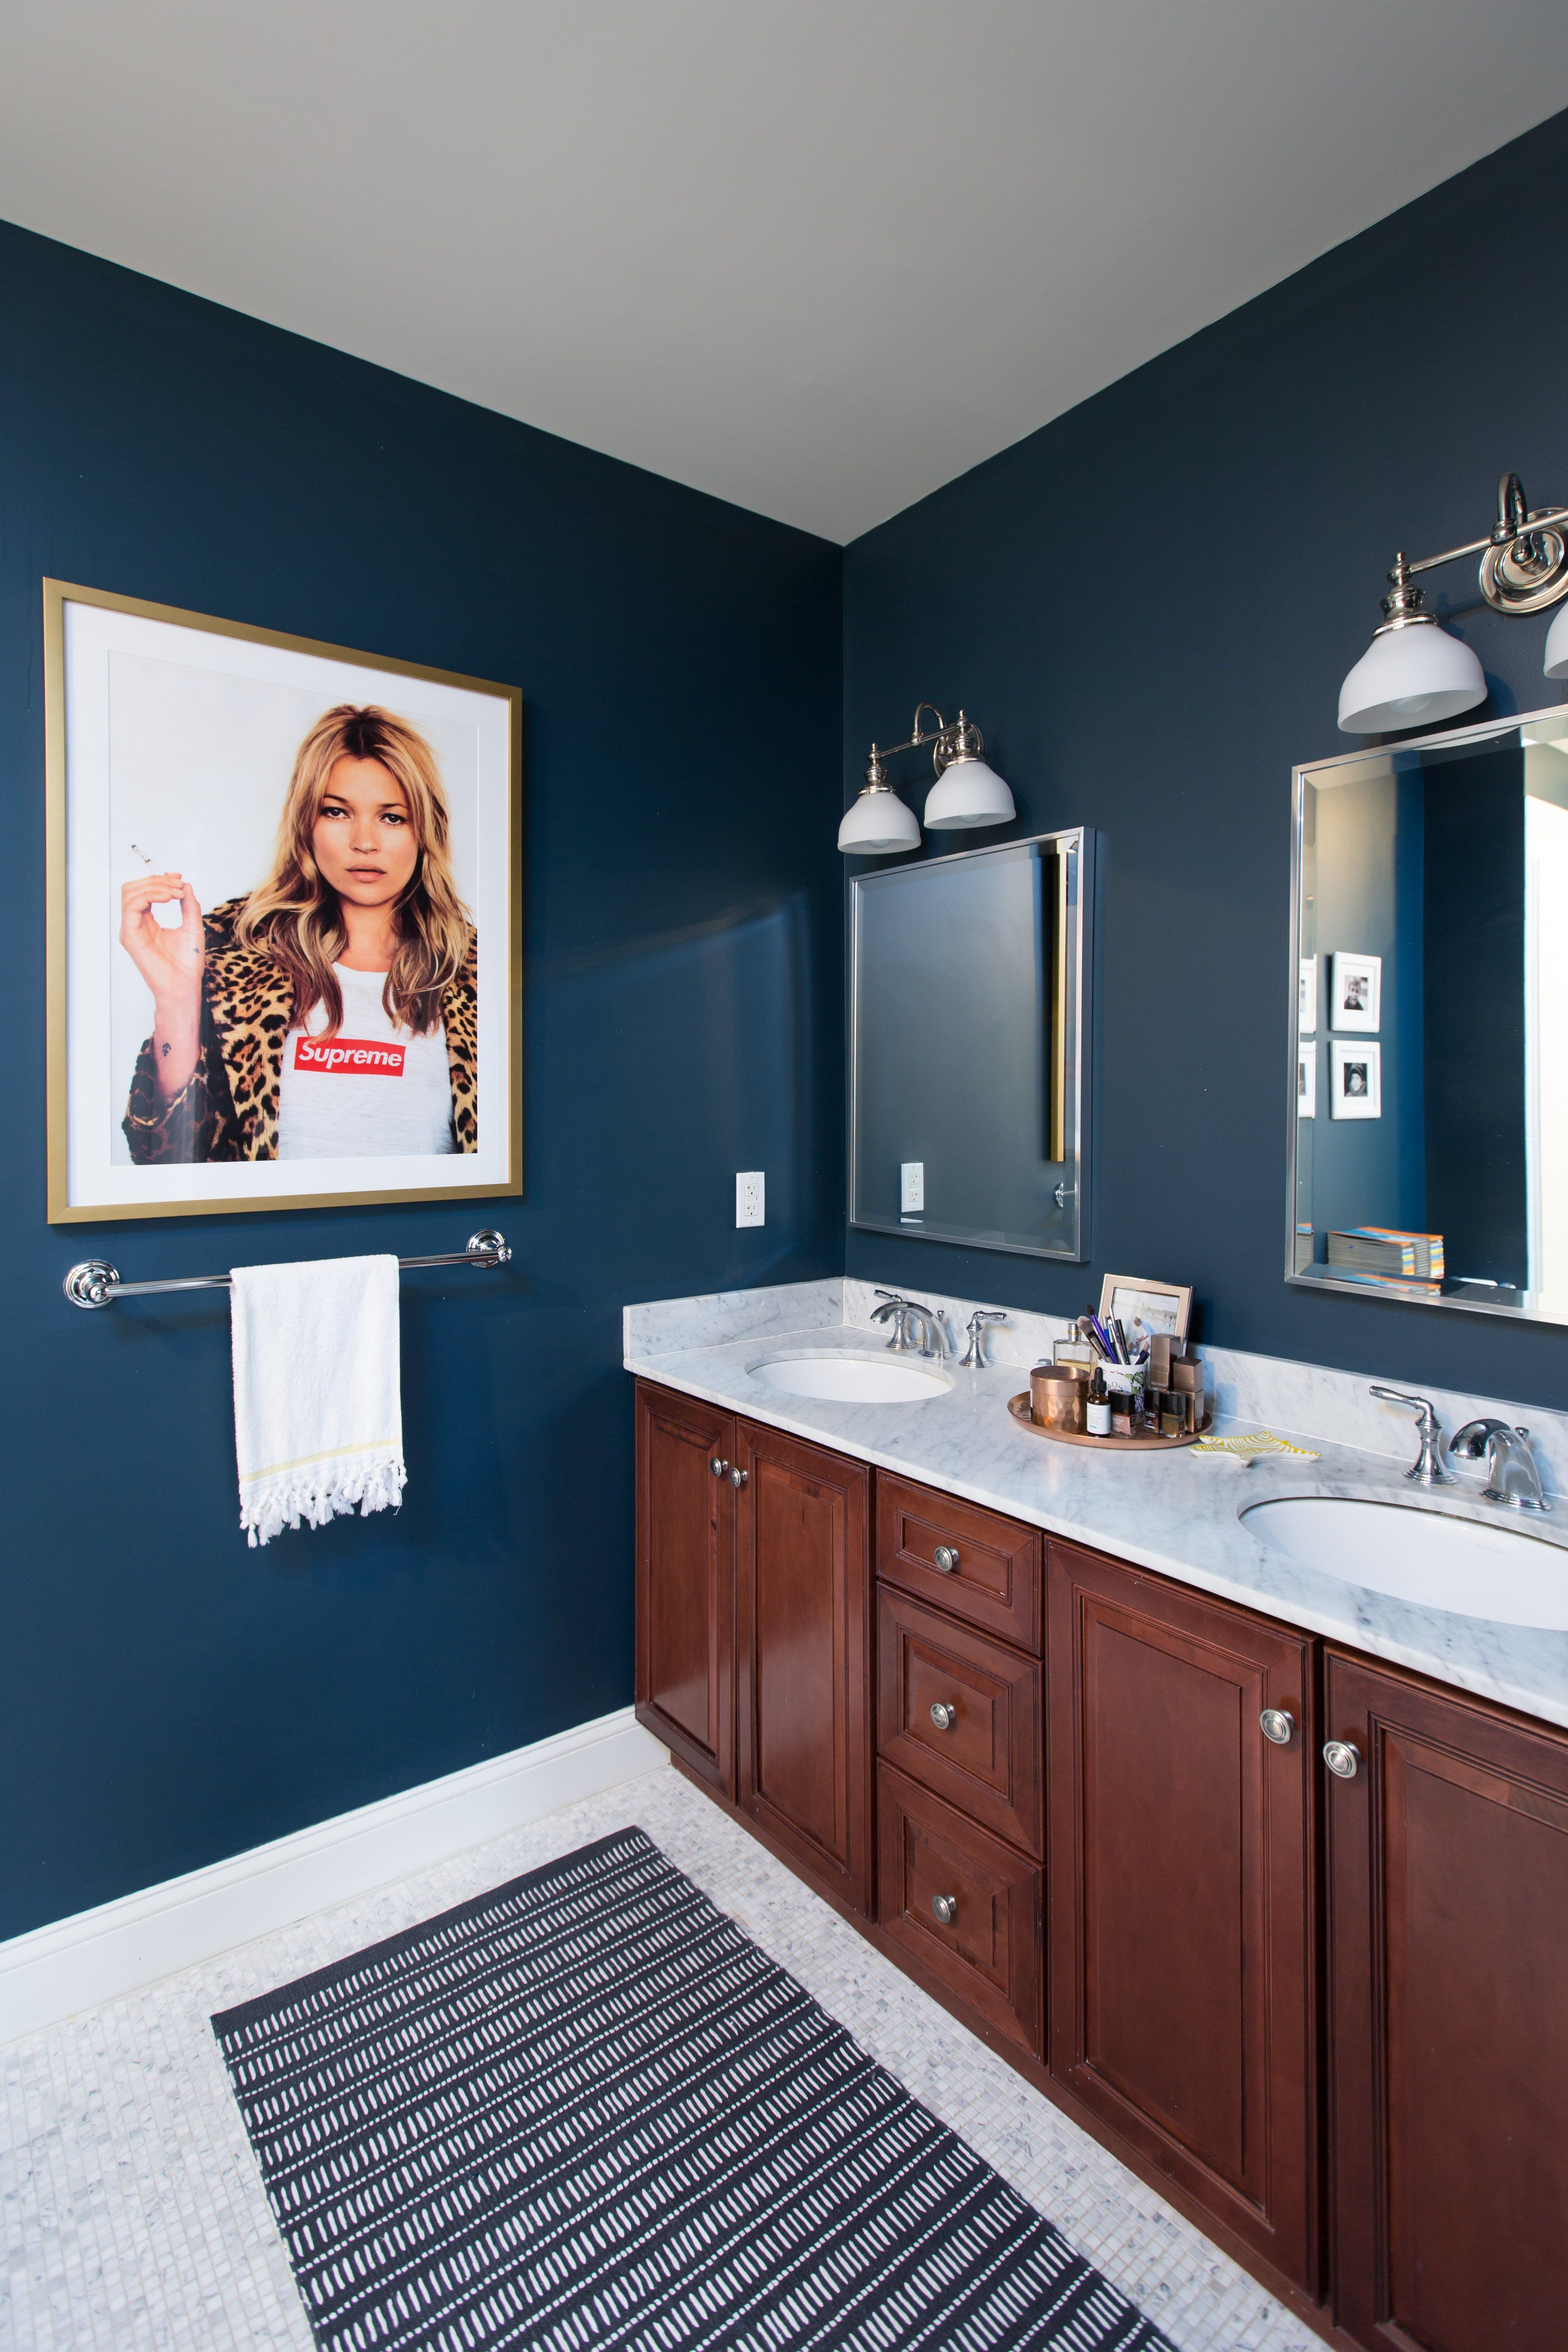 Paint colors that match this Apartment Therapy photo: SW 6250 ...